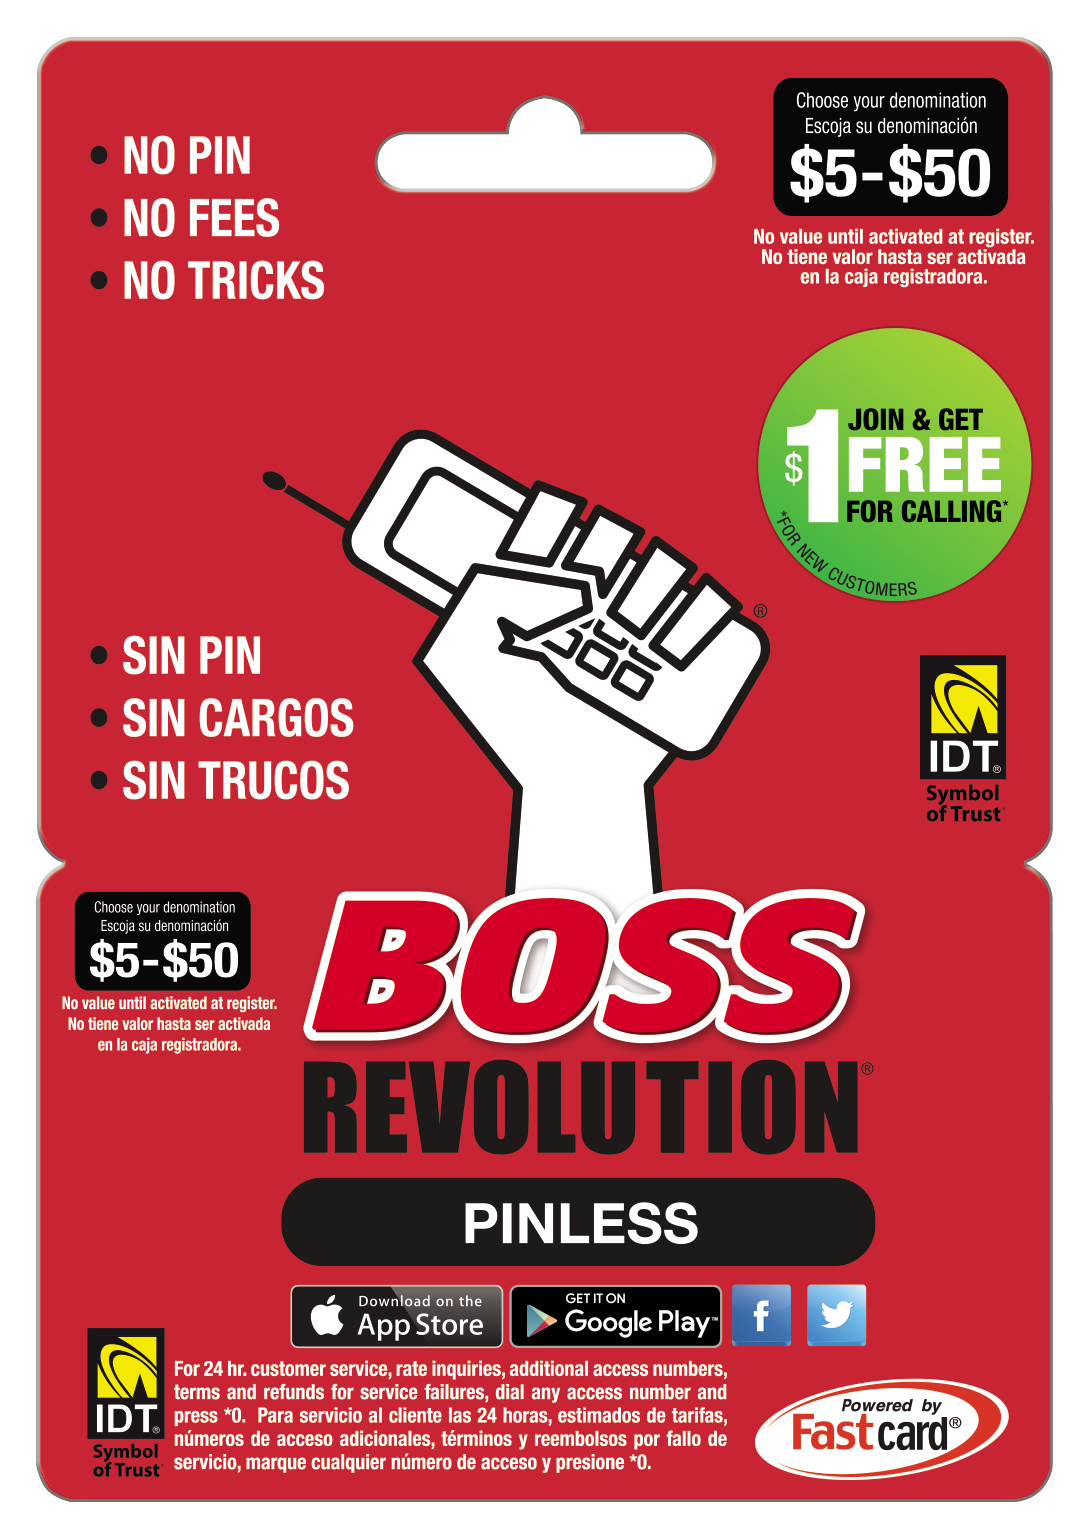 C3355_IDT_Boss_Revolution_M6_Open_5_50_v3_013119.png